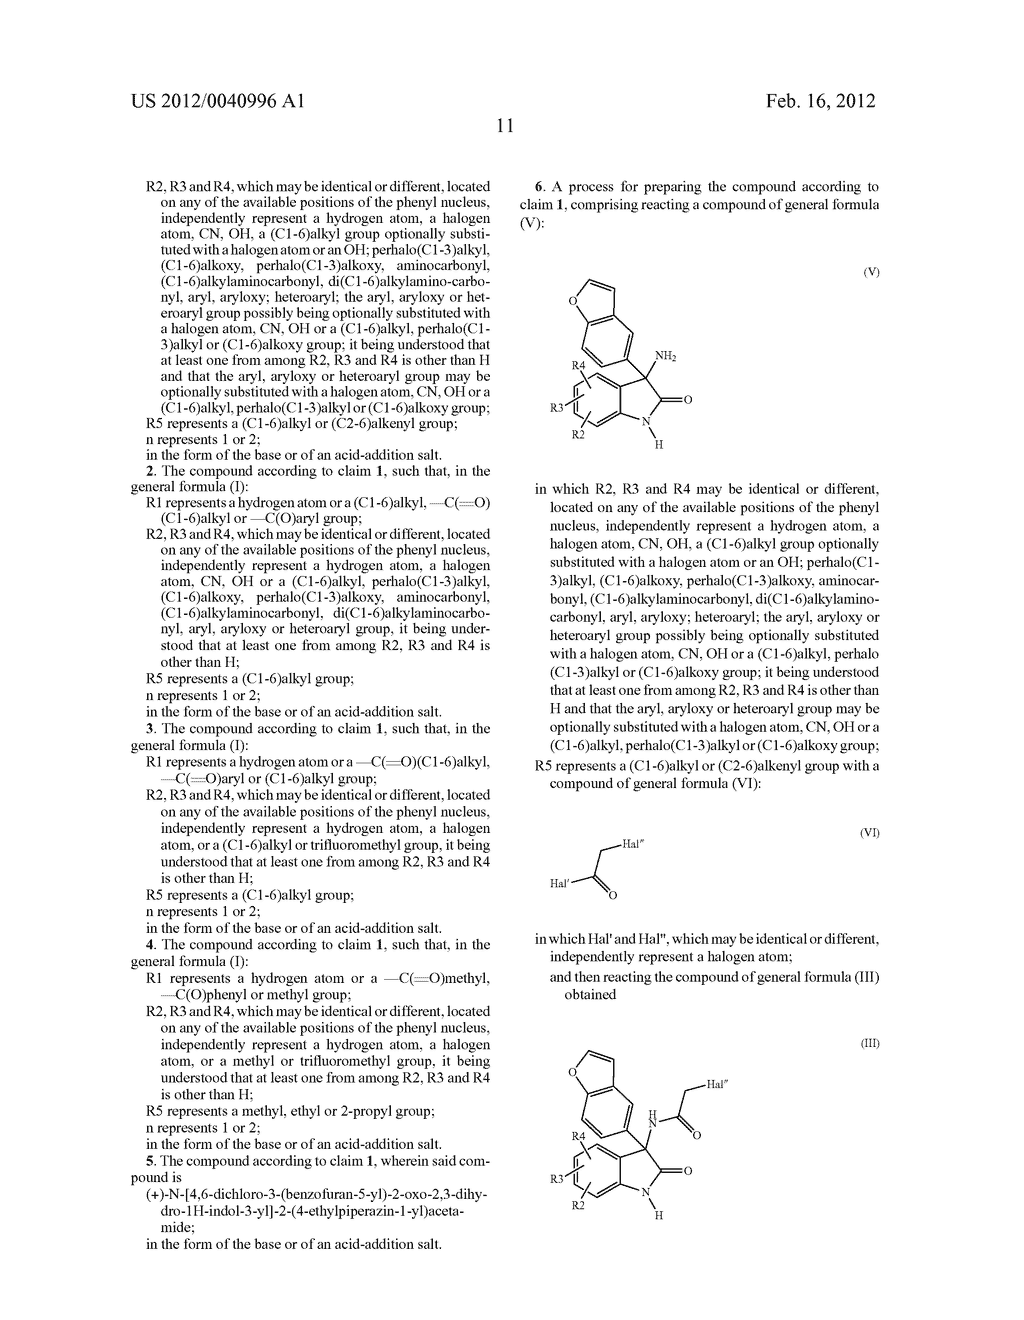 3-BENZOFURANYL-INDOL-2-ONE DERIVATIVES SUBSTITUTED AT THE 3 POSITION,     PREPARATION THEREOF, AND THERAPEUTIC USE THEREOF - diagram, schematic, and image 12